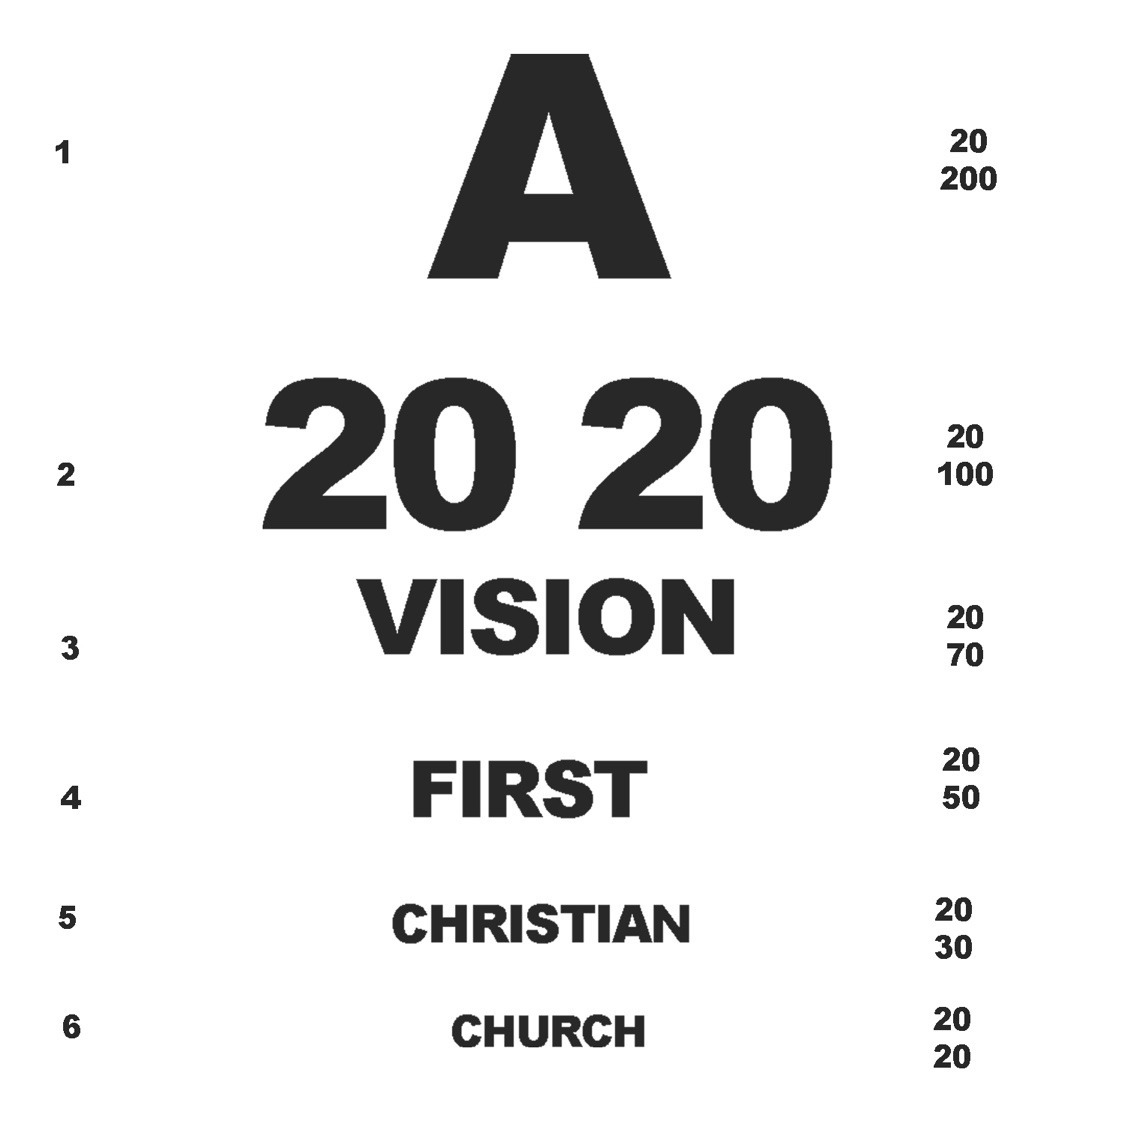 2020 VISION (Part 1 - God is Good)